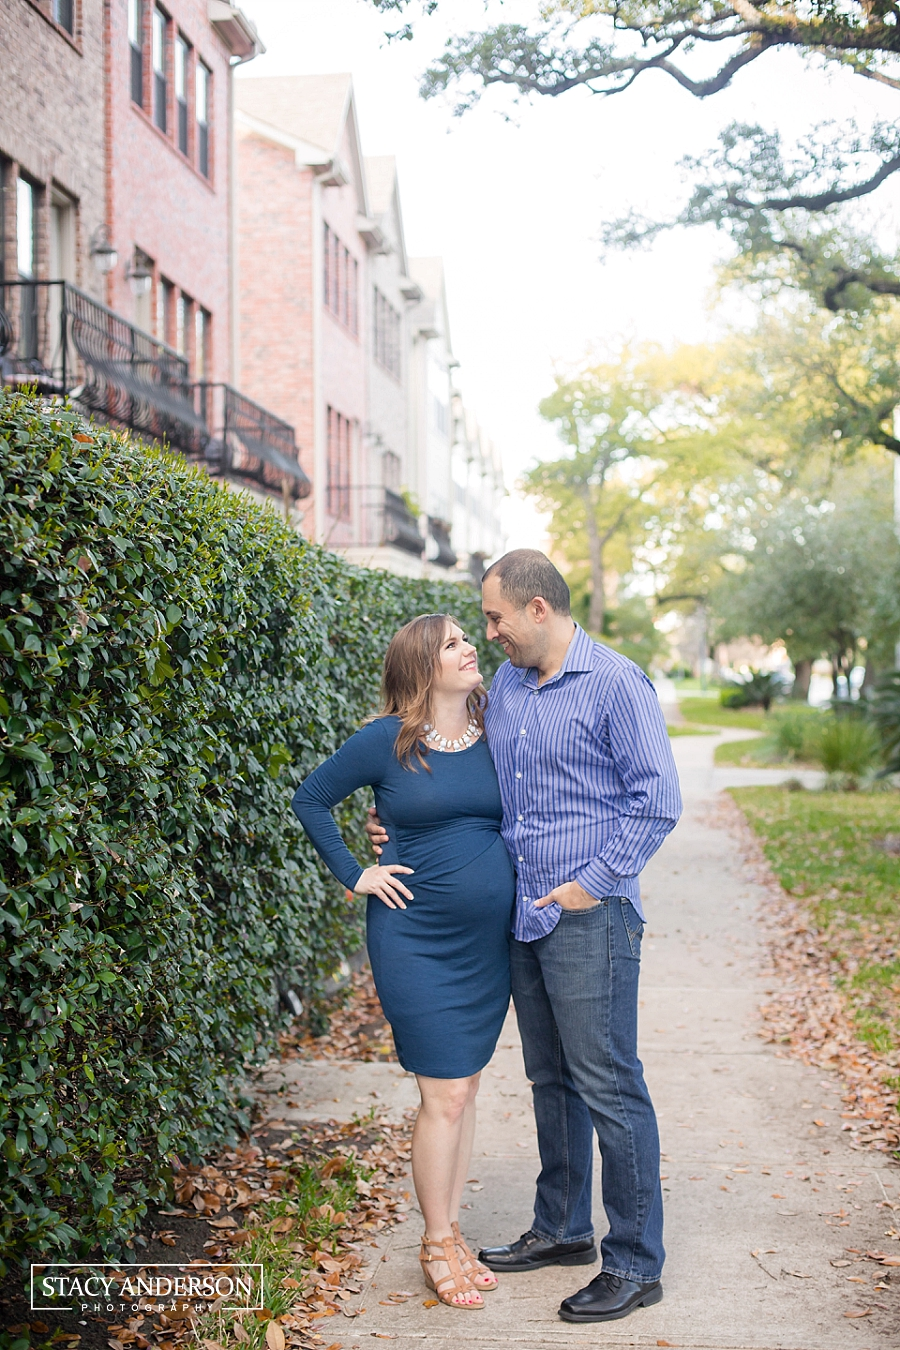 Stacy Anderson Photography Houston Maternity Photographer_1175